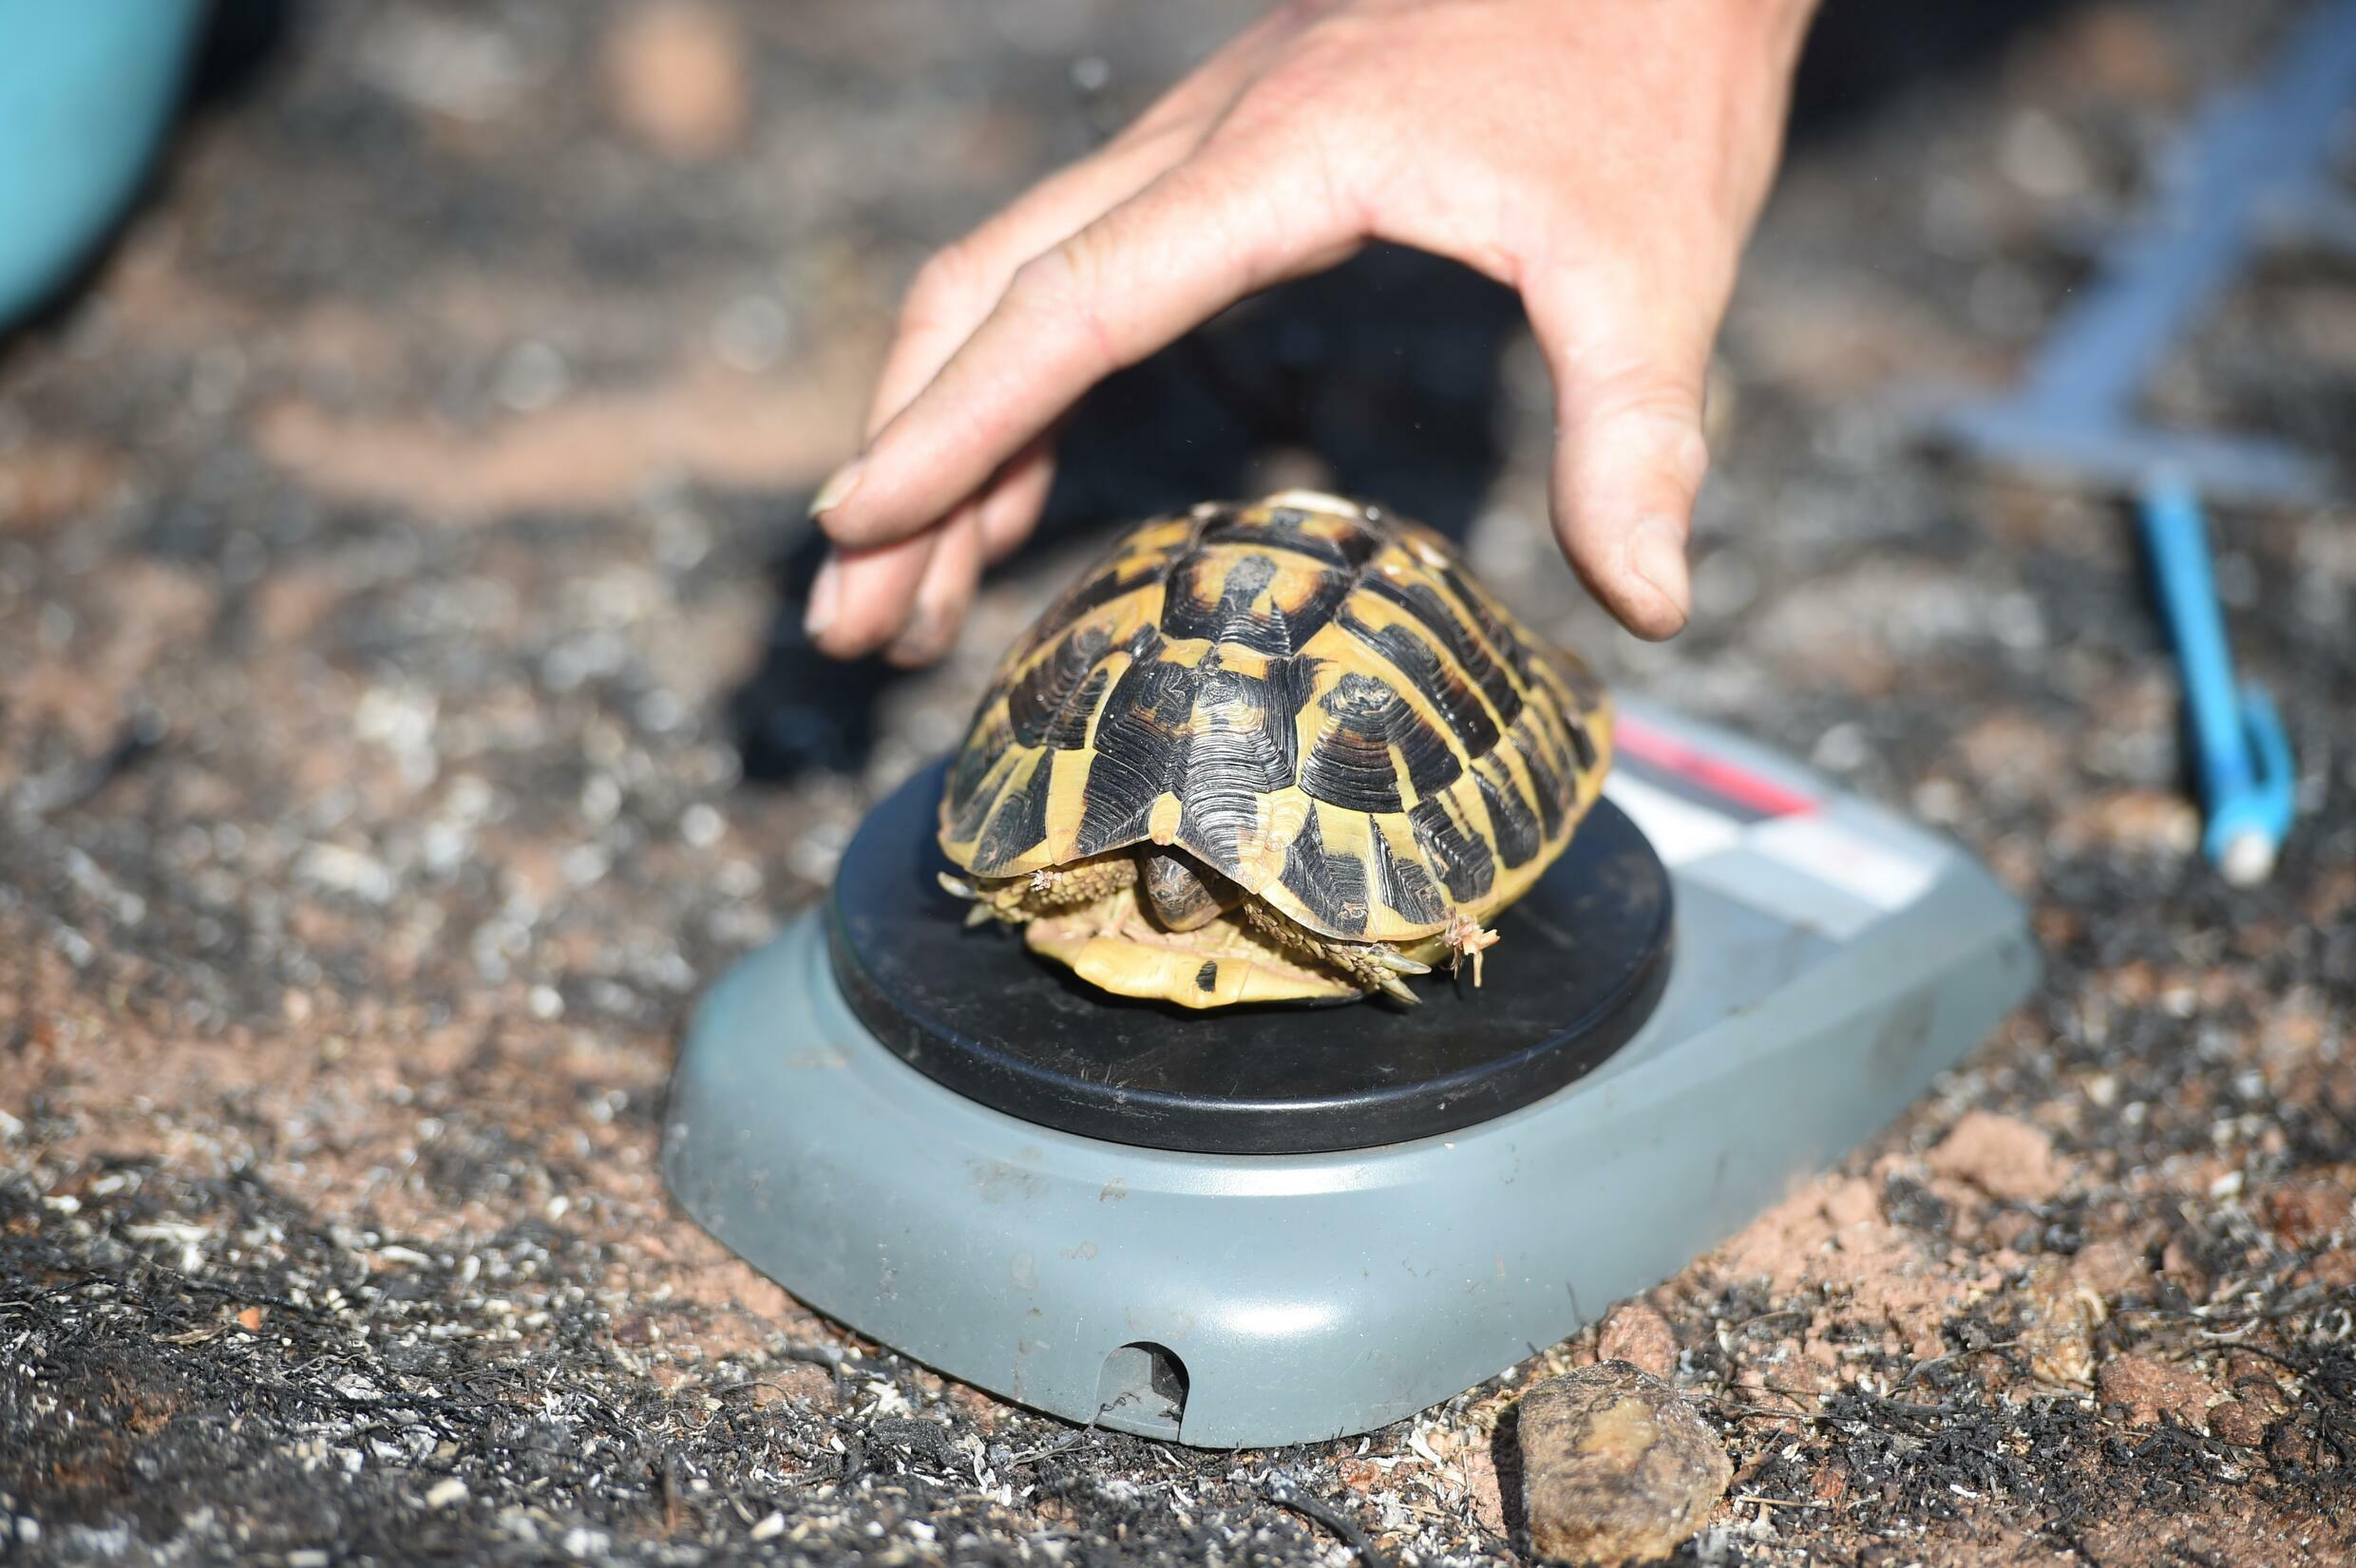 Tortoises first appeared on Earth around 250 million years ago